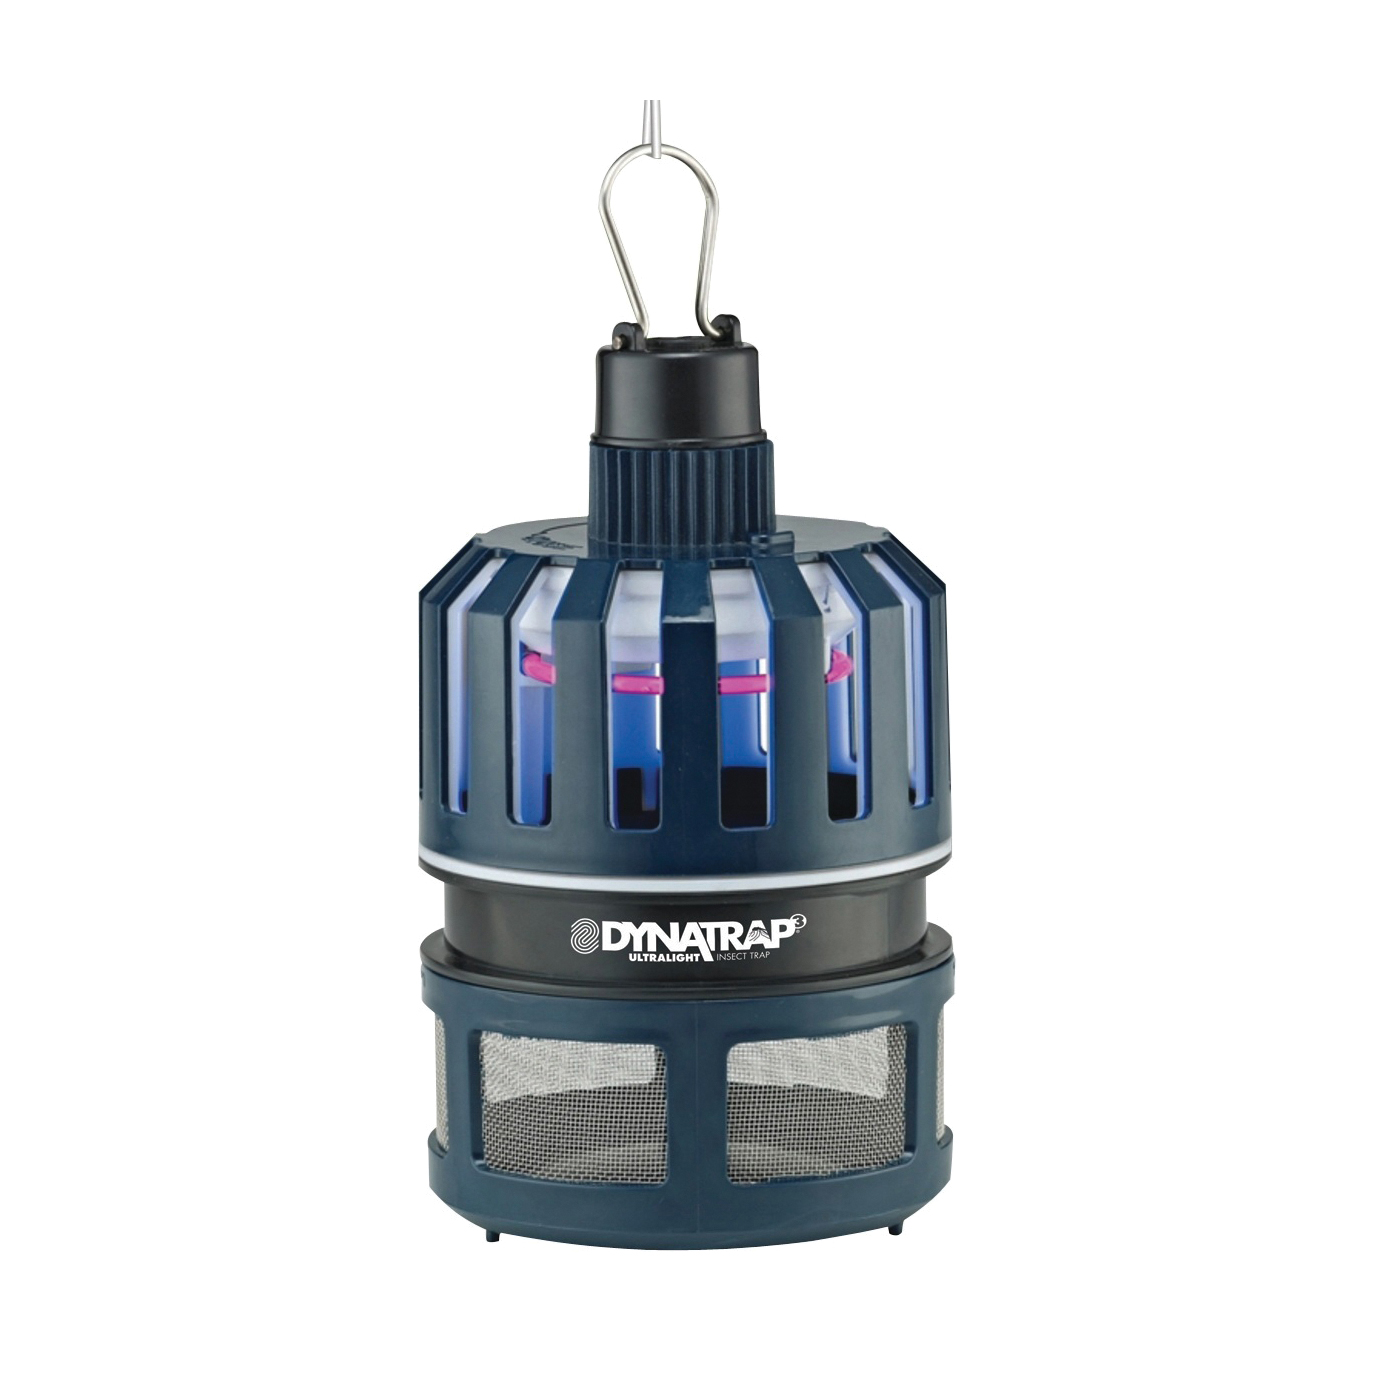 Picture of DYNATRAP DT150 Insect Trap, Tungsten